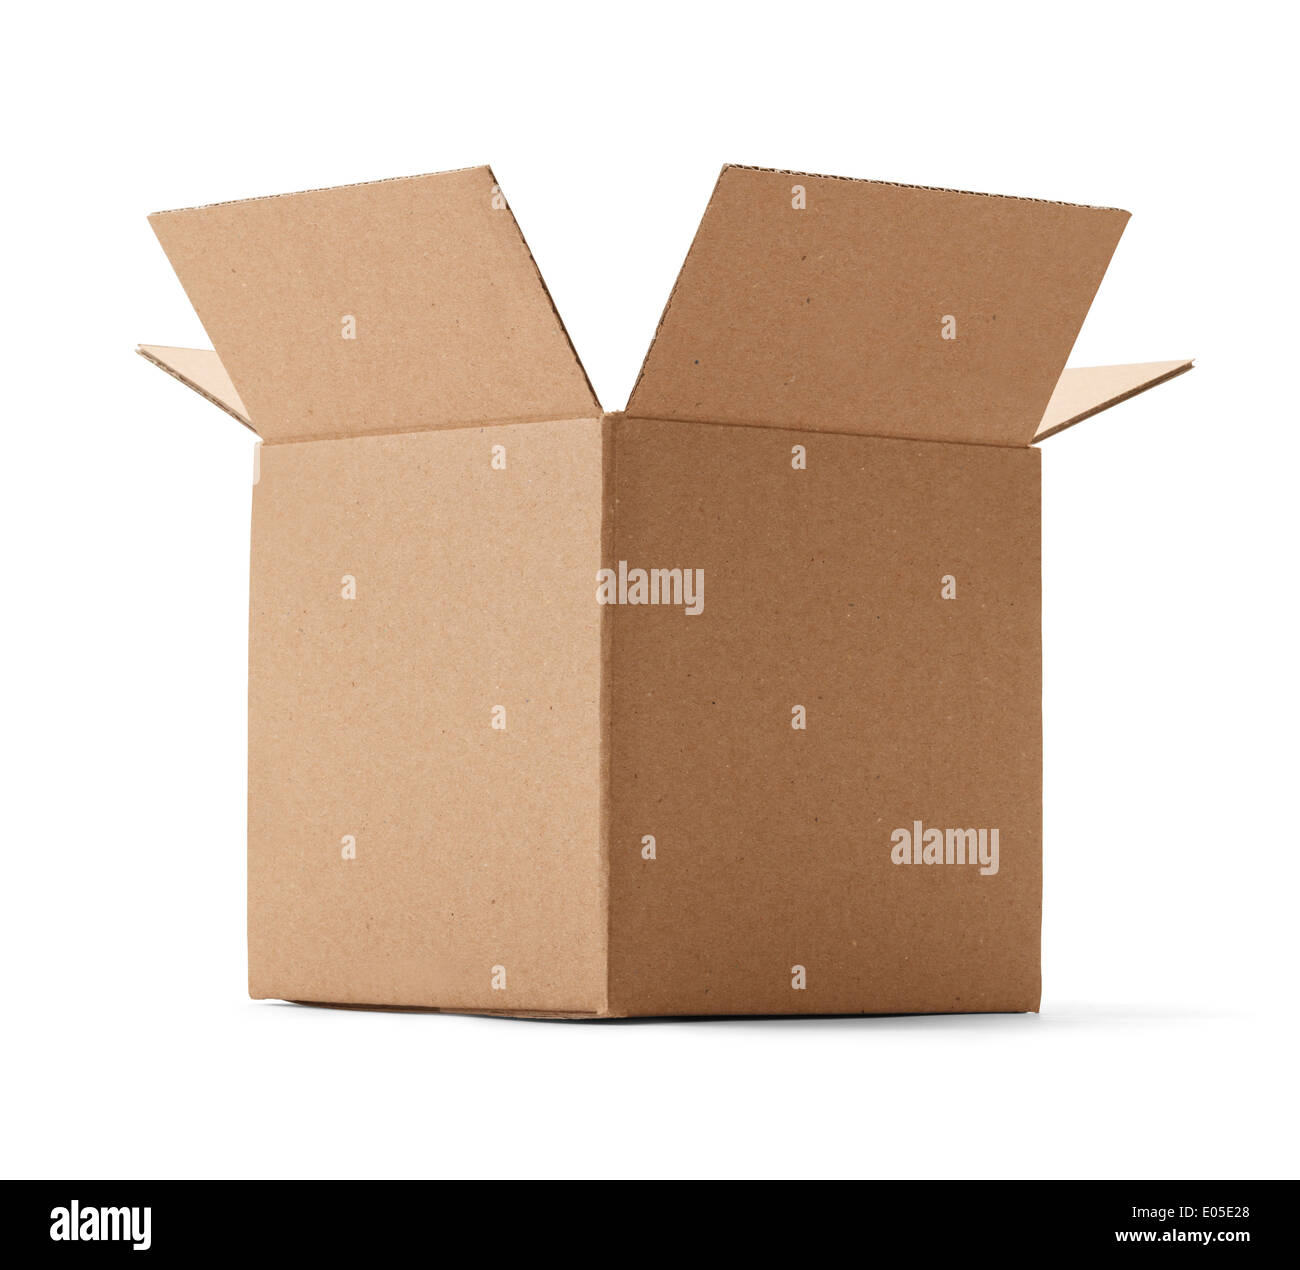 Upward view of a brown cardboard box isolated on a white background. - Stock Image